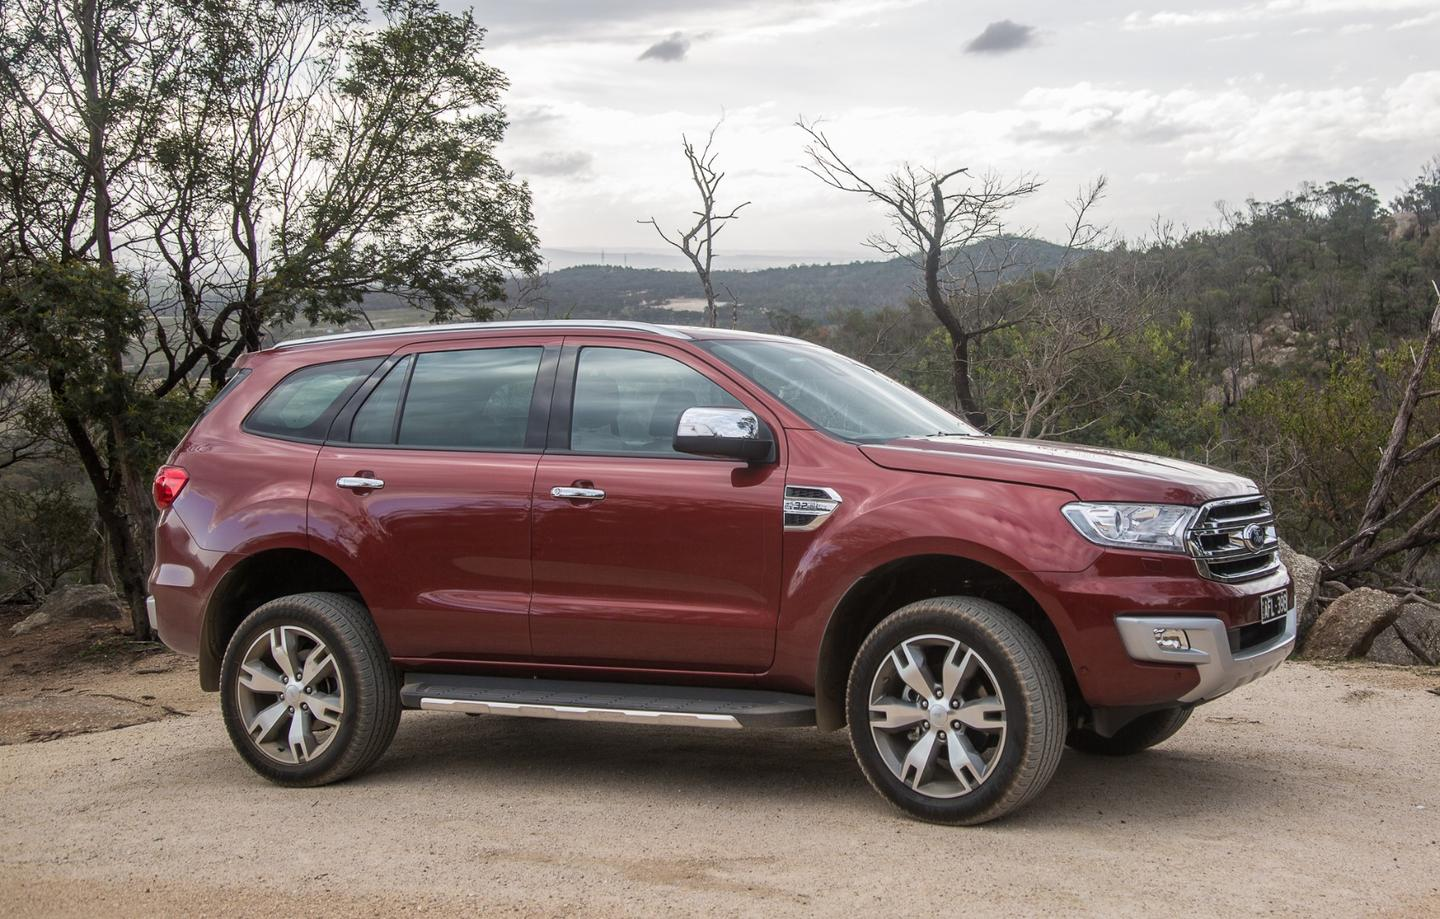 """Our test rig was the top of the line Titanium model with 20"""" Alloy wheels"""